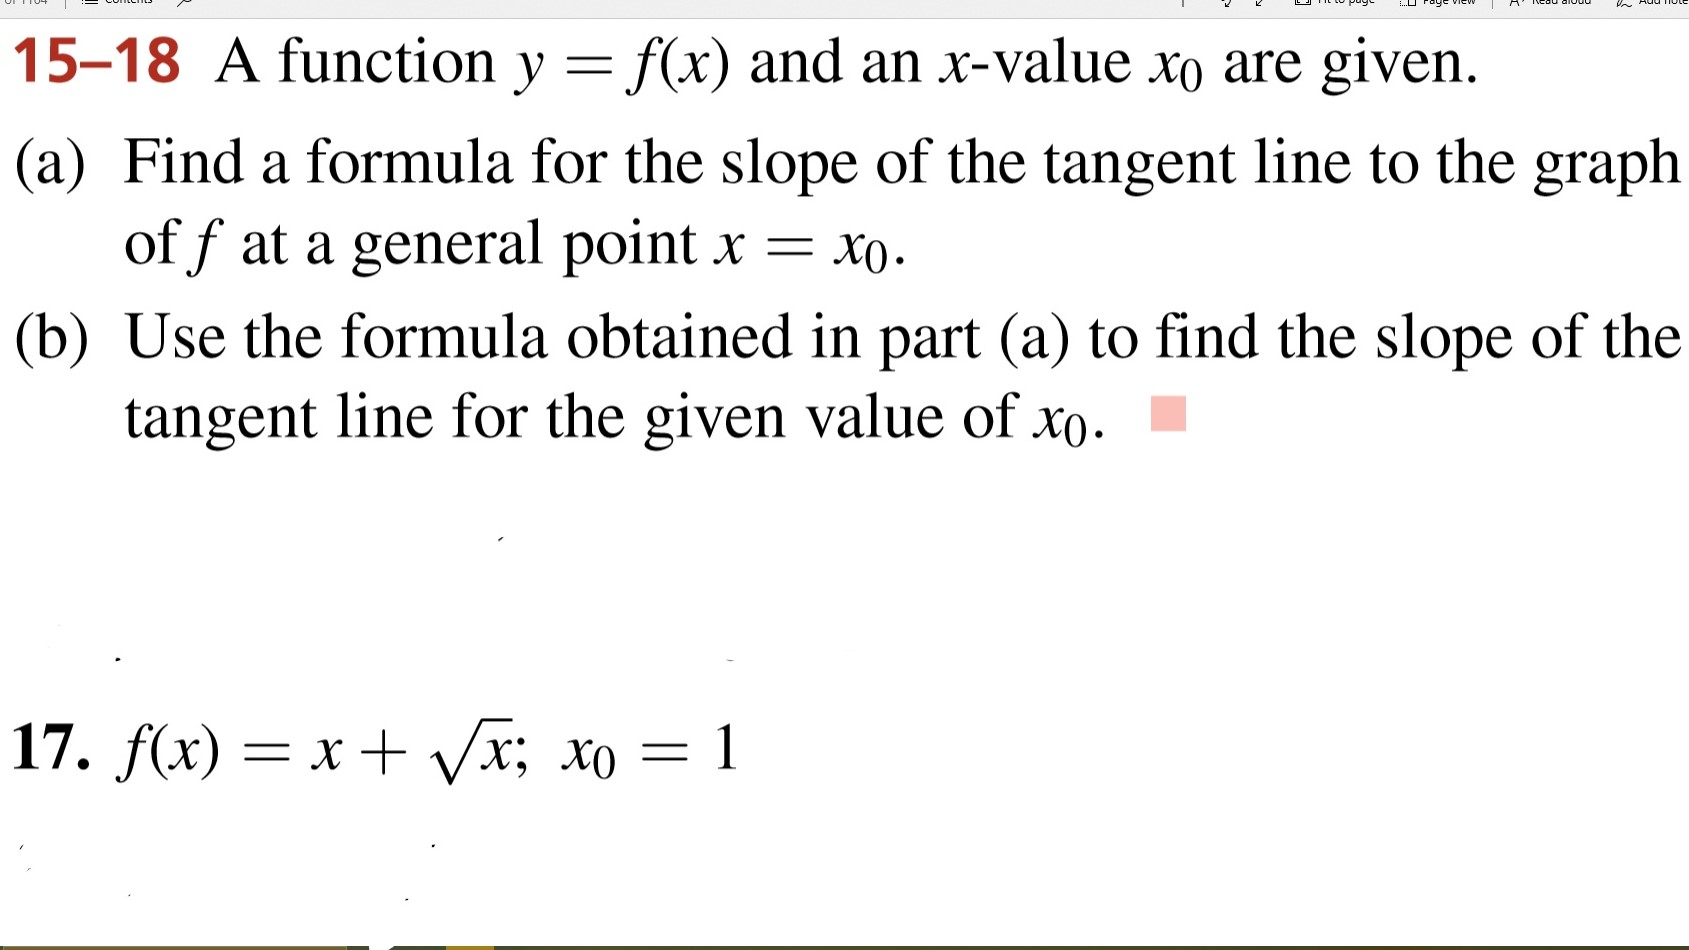 15-18 A function y = f(x) and an x-value xo are given. (a) Find a formula for the slope of the tangent line to the graph of f at a general point X (b) Use the formula obtained in part (a) to find the slope of the tangent line for the given value of xo 17. f(x) xx; xo 1 X